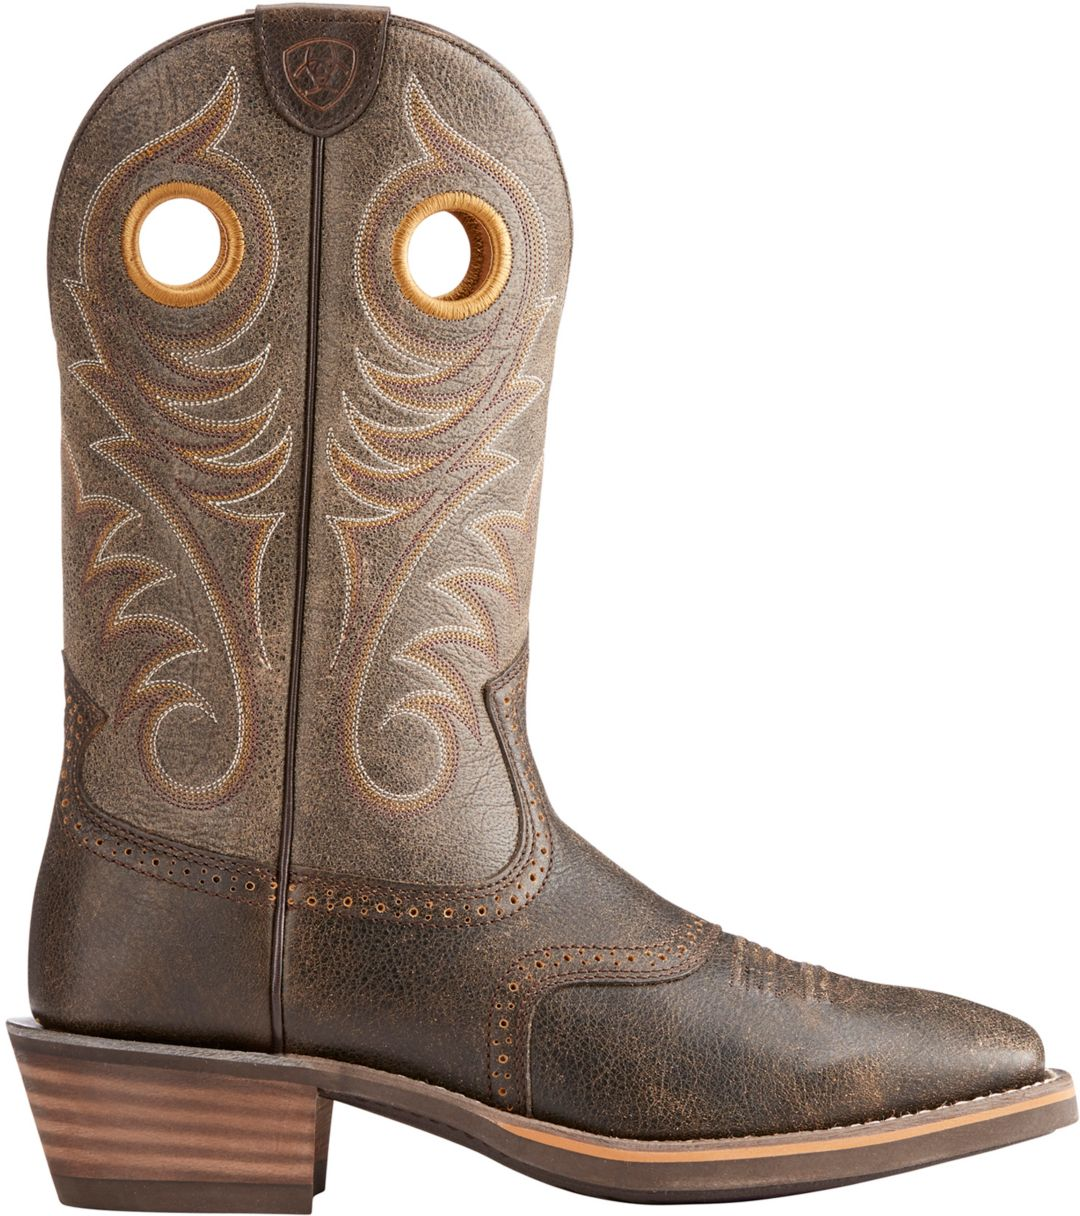 59dbc895a2e Ariat Men's Heritage Roughstock Western Boots. noImageFound. Previous